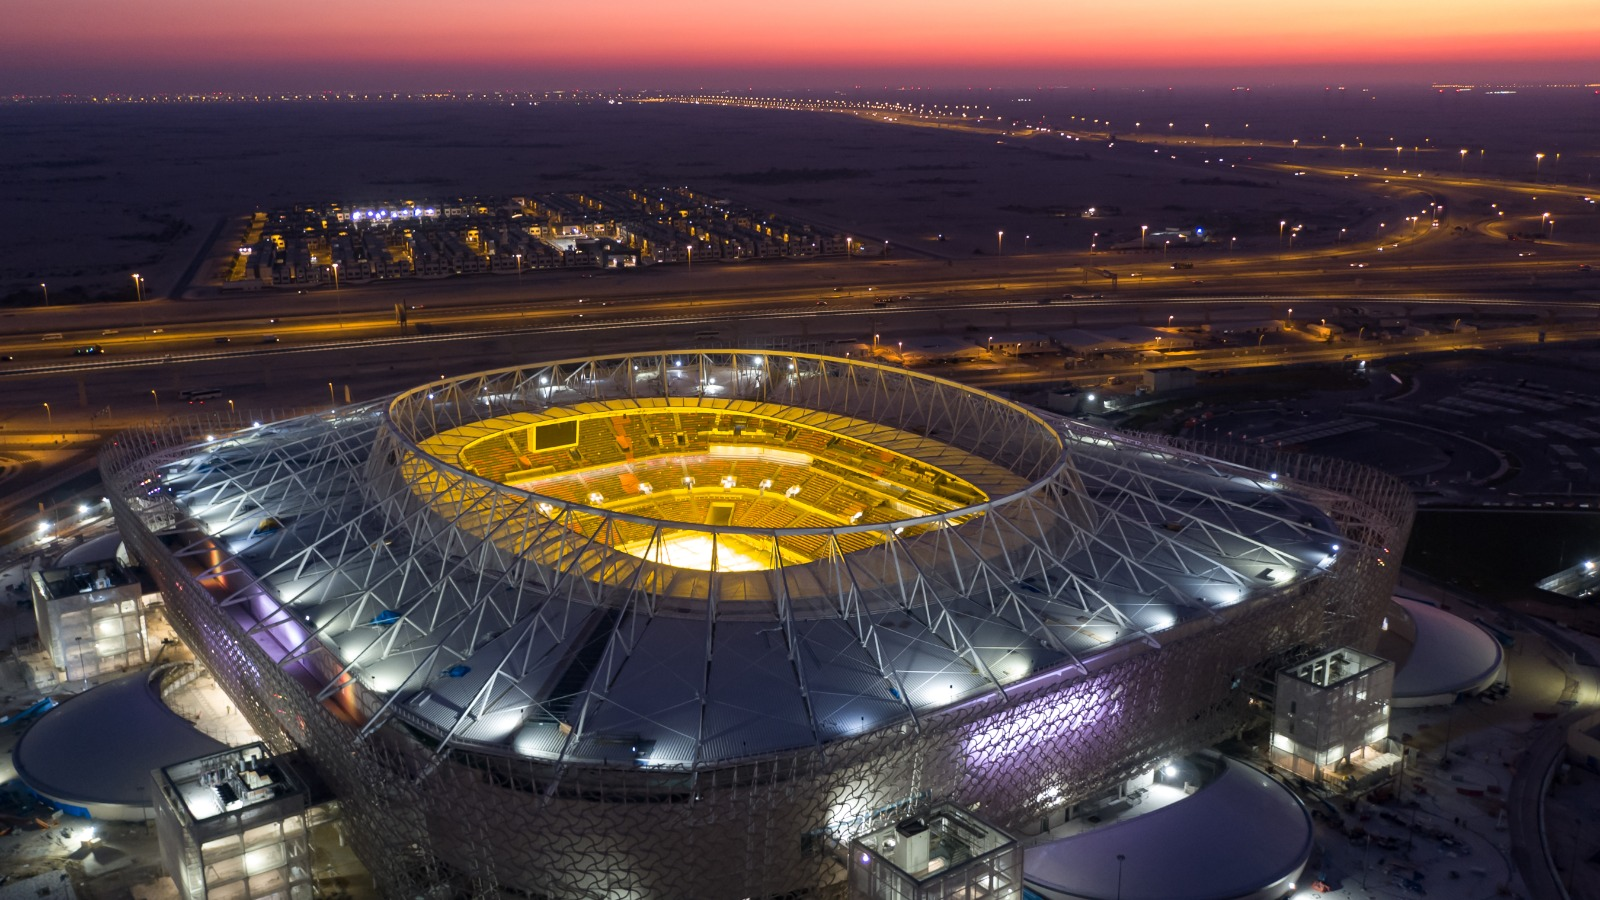 The economic blockade on Qatar ends - 2022 World Cup truly an Arab World Cup!